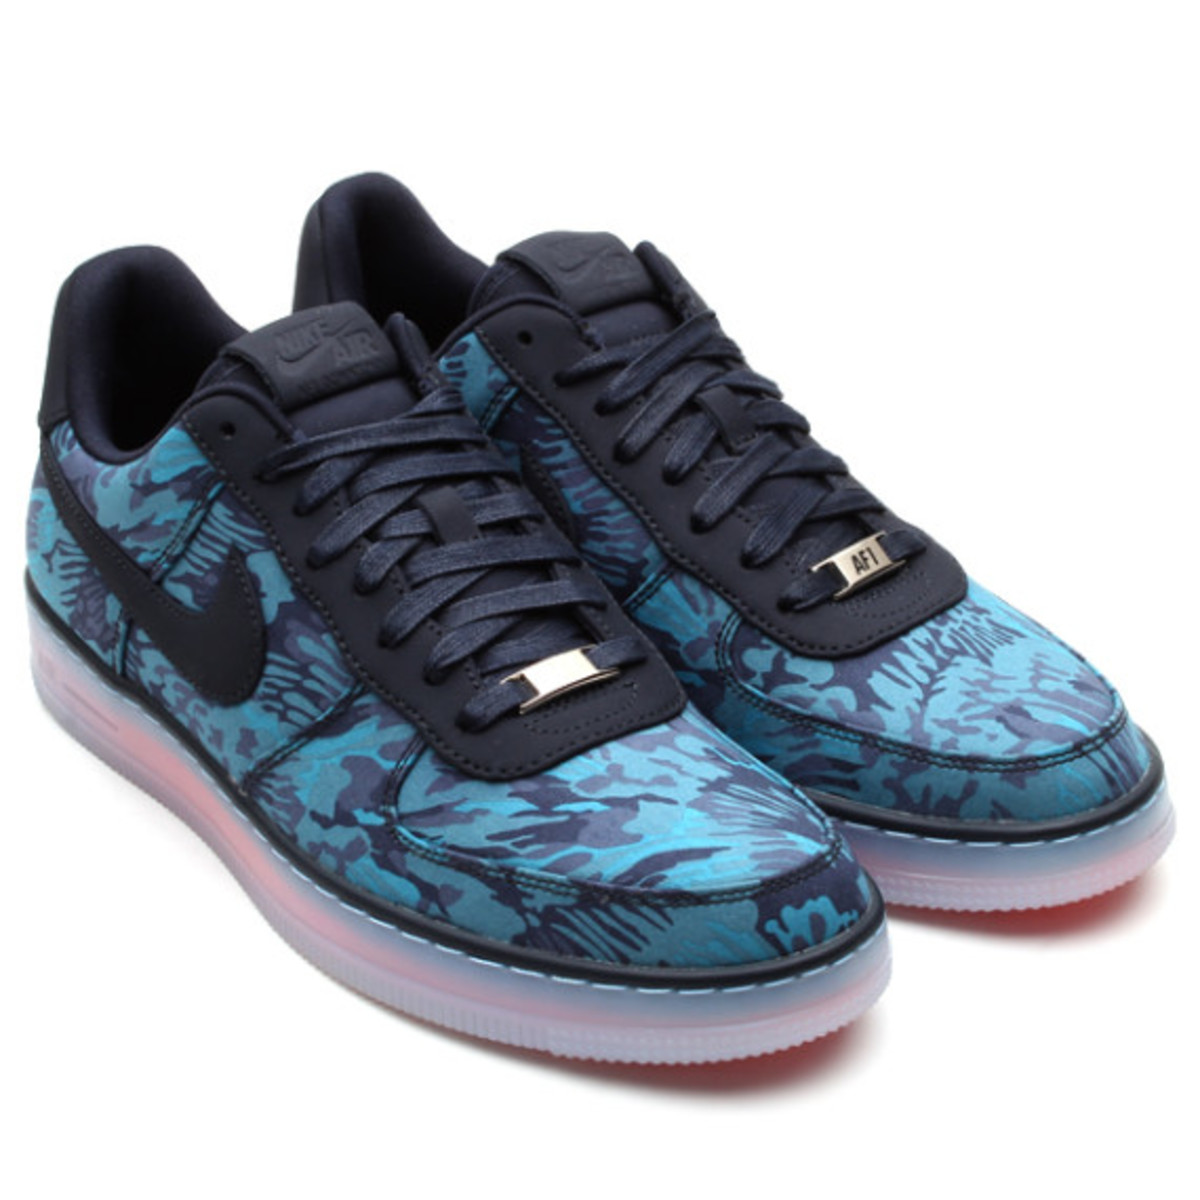 more photos d9139 a2a86 ... liberty art fabrics  Nike Air Force 1 Downtown PRM QS Pack  Release  Date  April 13th, 2013 (Saturday) ...